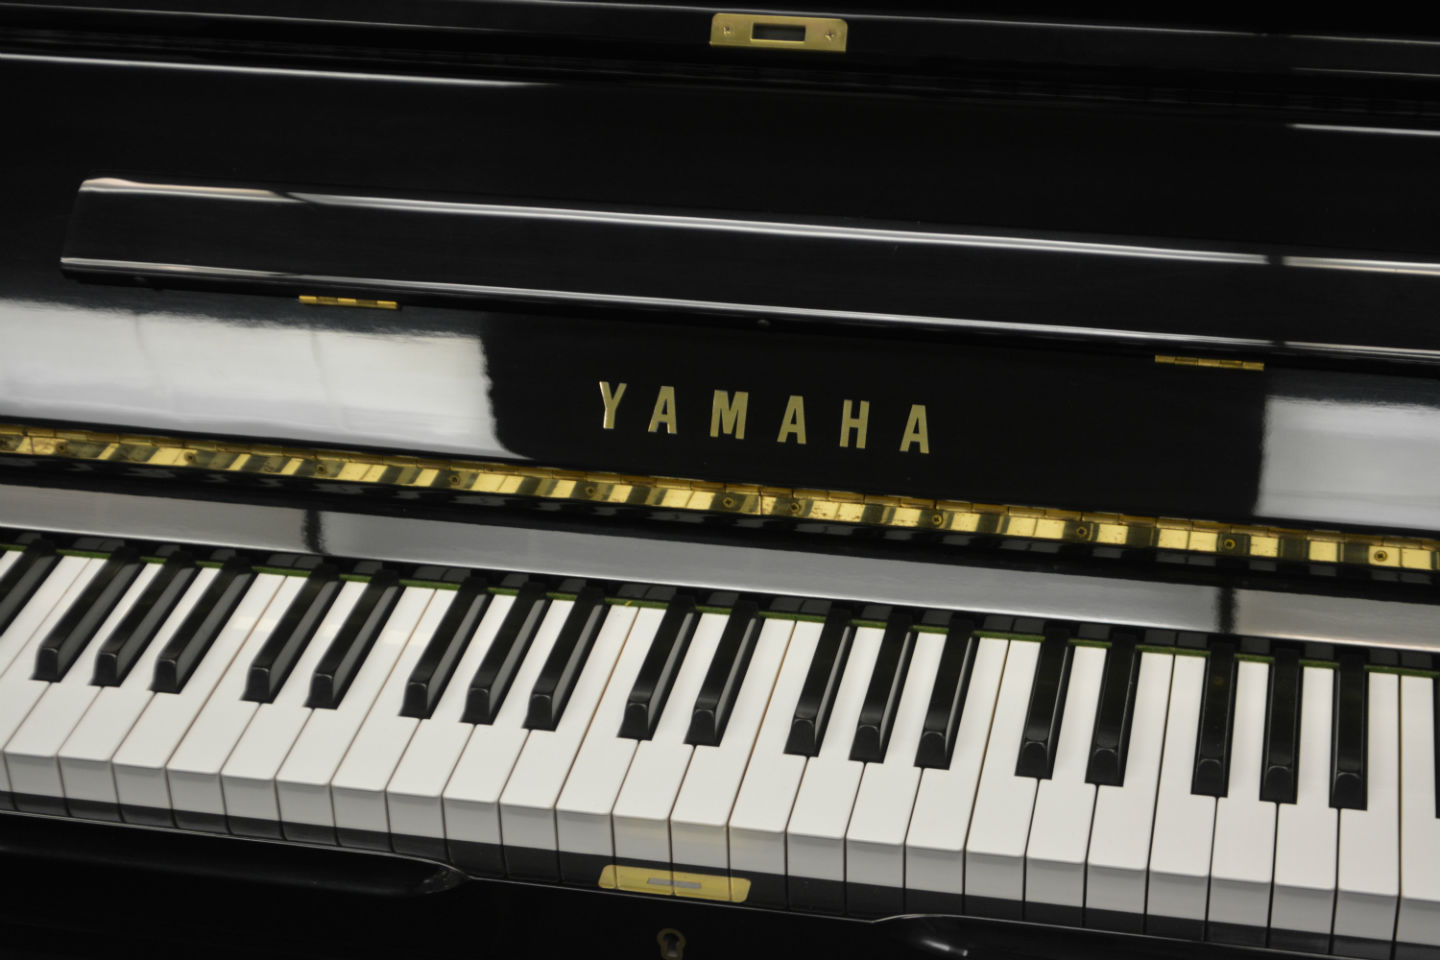 Yamaha U3 Upright Piano (used)